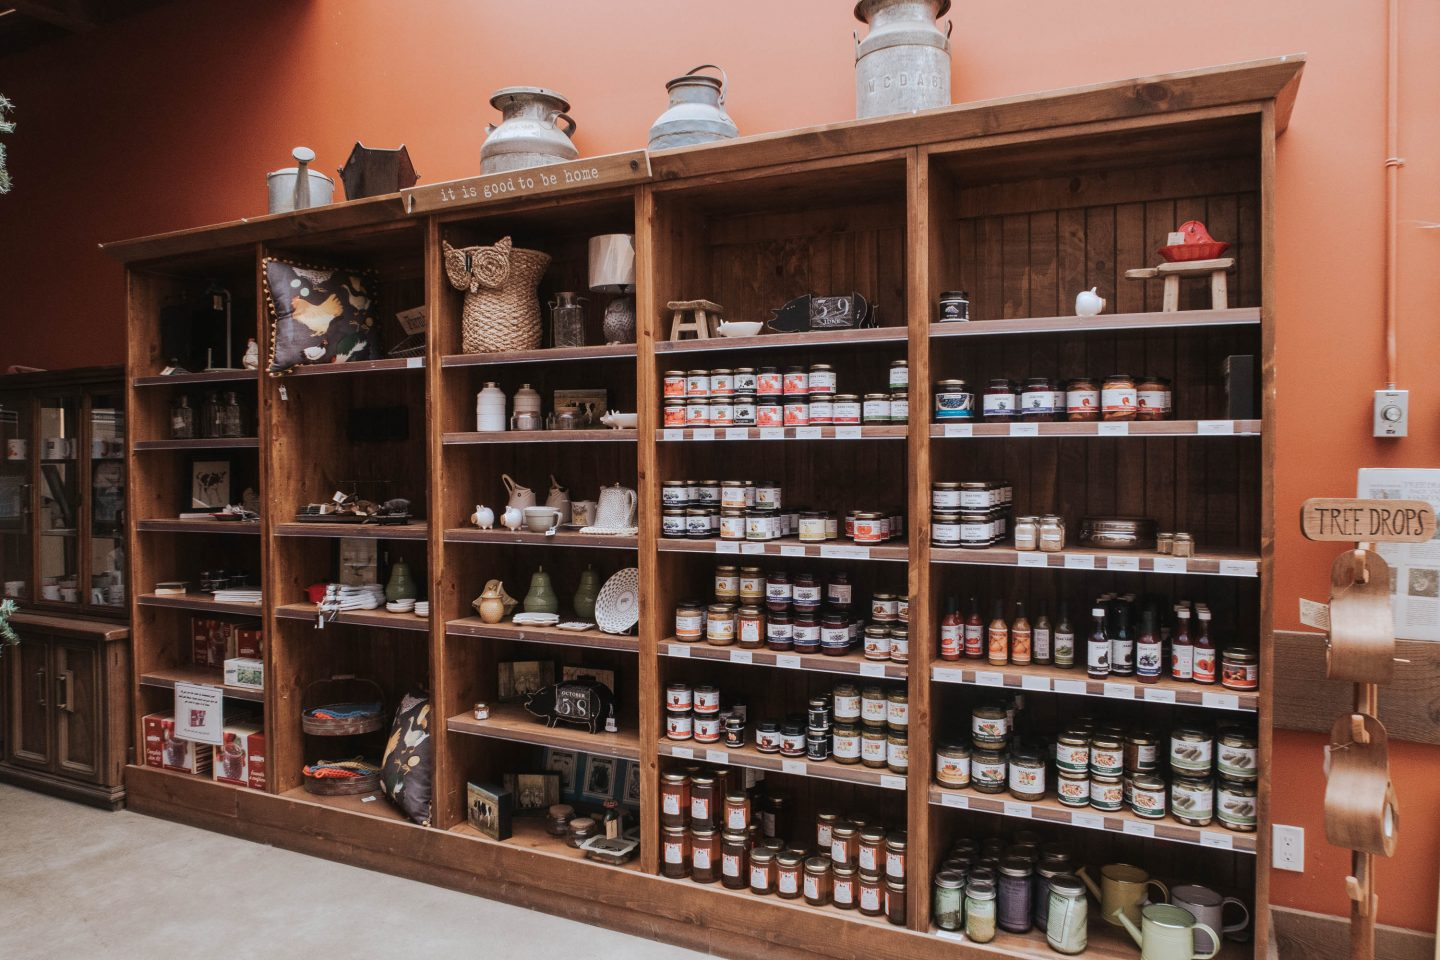 Mann Farms store and jams in Abbotsford